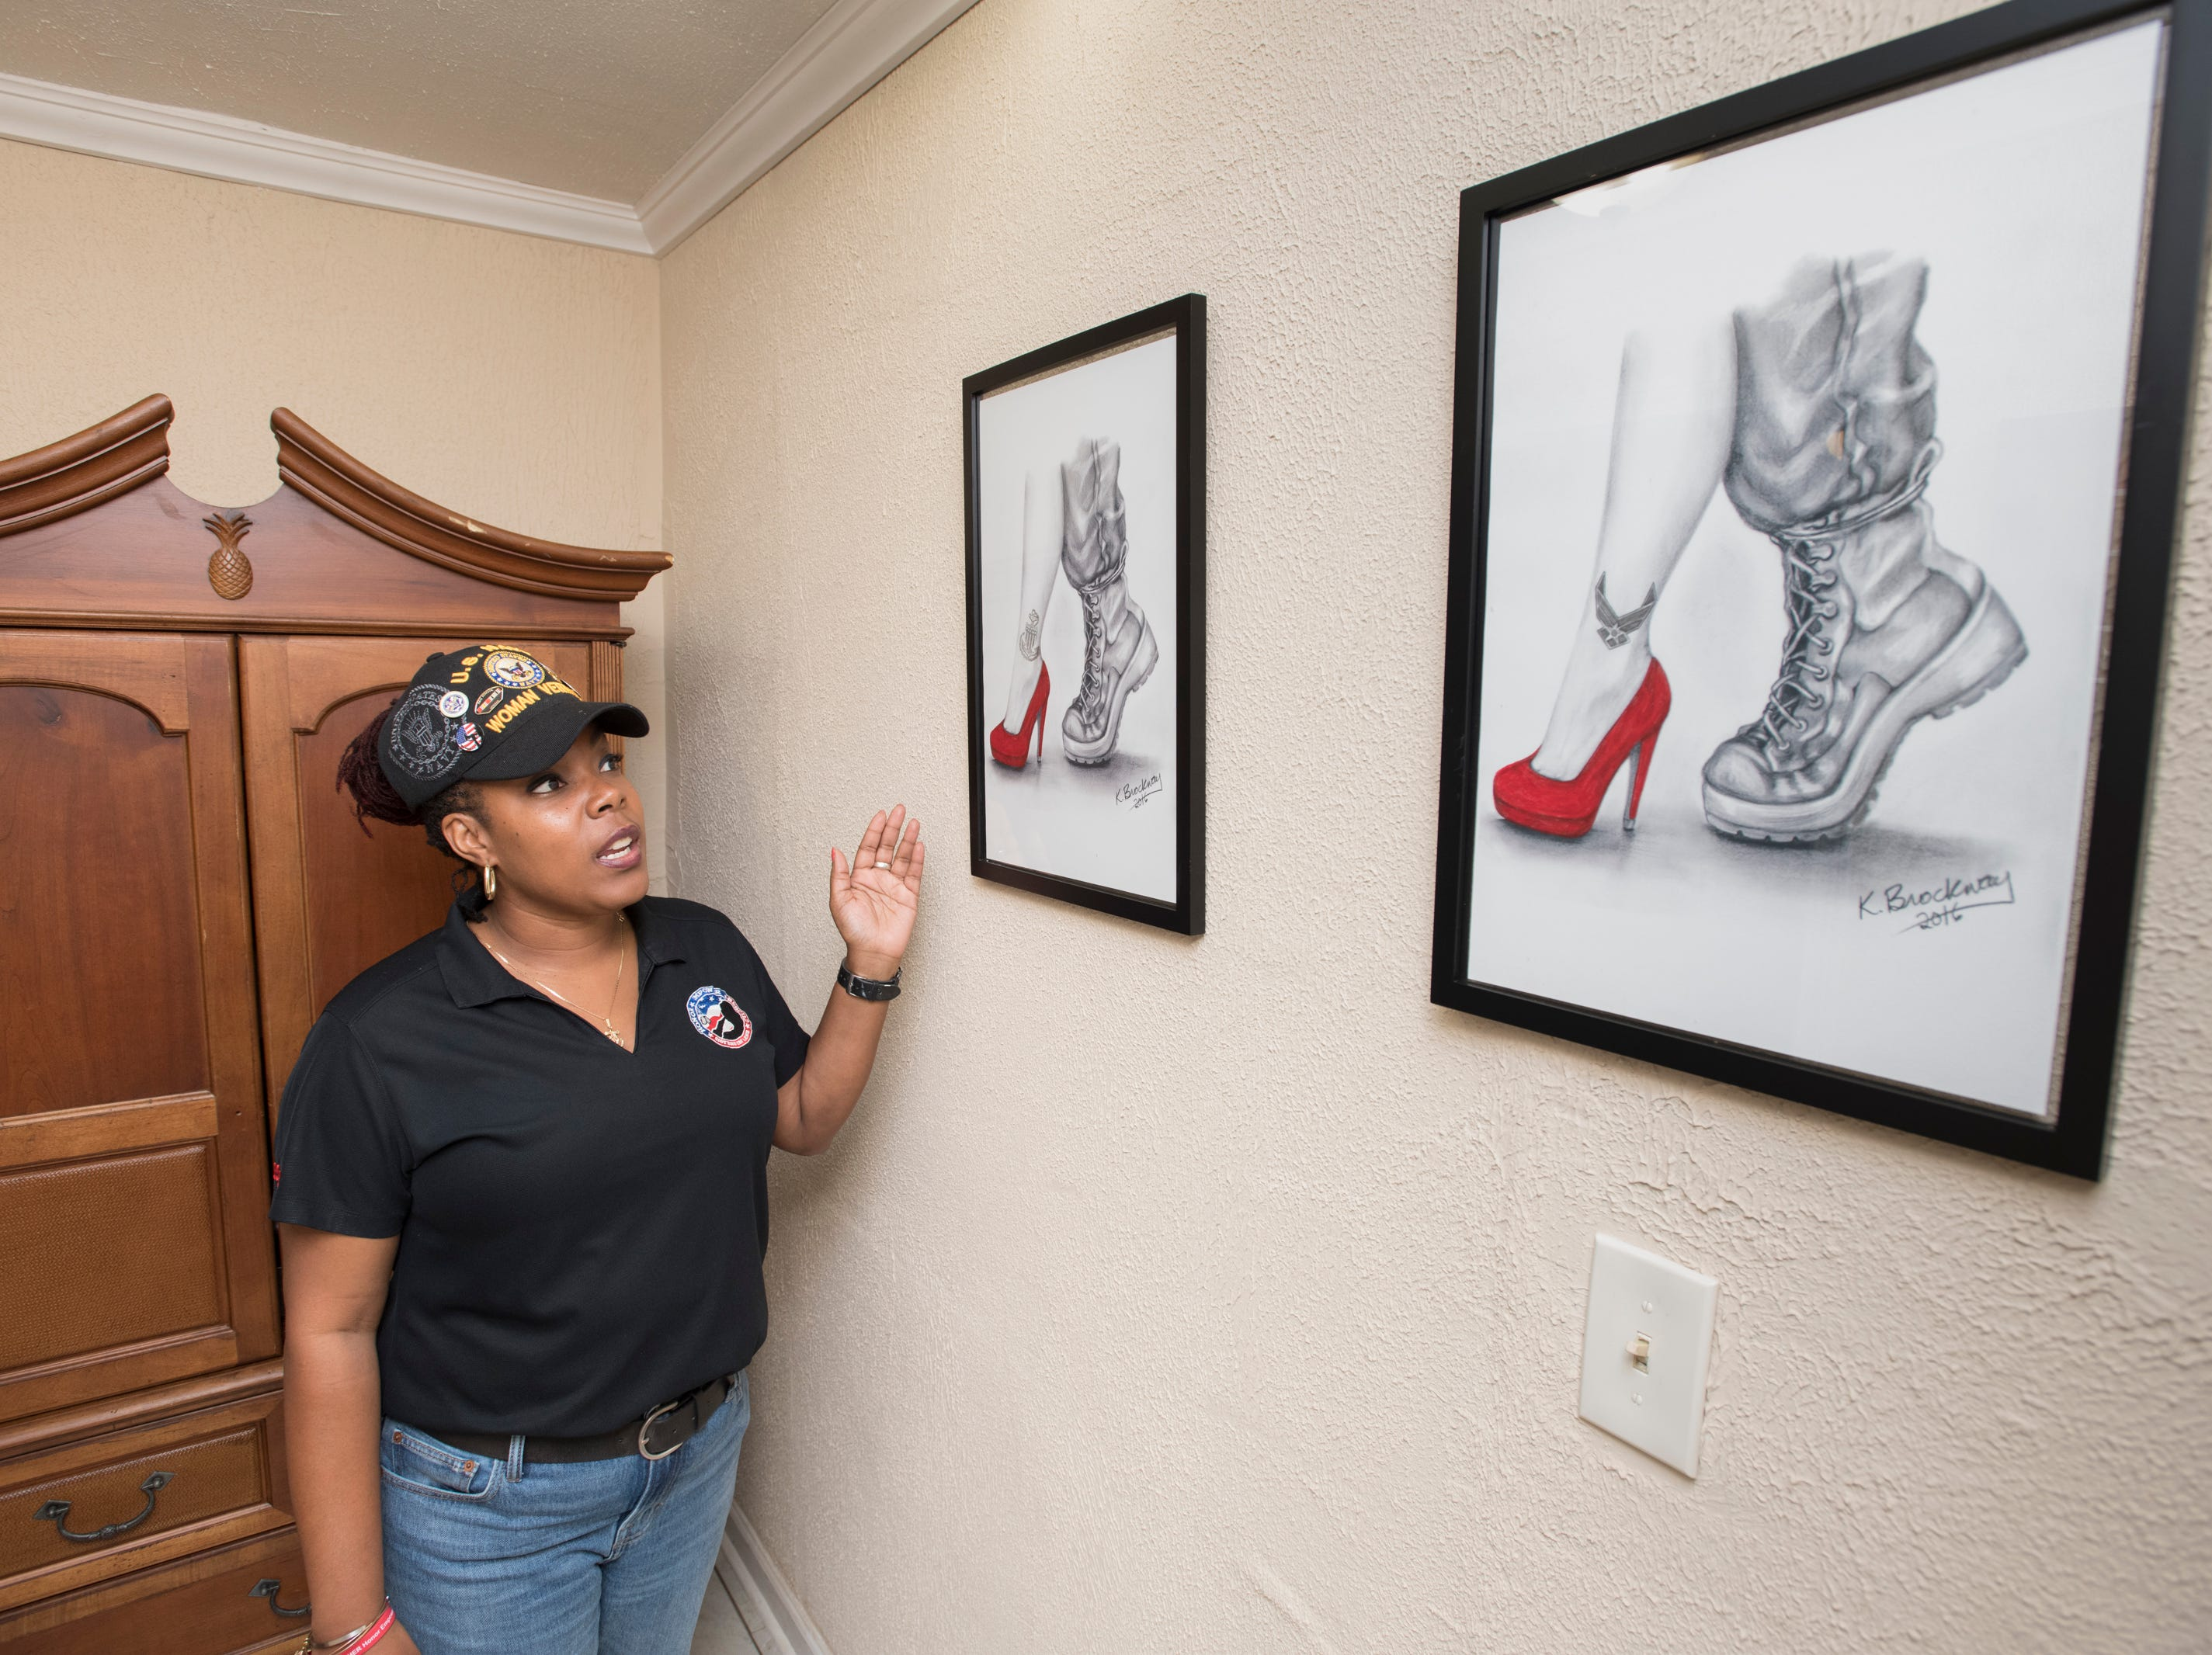 CEO and founder Nancy Bullock-Prevot talks about some of the artwork displayed at the HER Foundation Faith House on West Fairfield Drive in Pensacola on Wednesday, November 7, 2018.  These images are part of a collection showing the transition from the different branches of the military into civilian life for women.